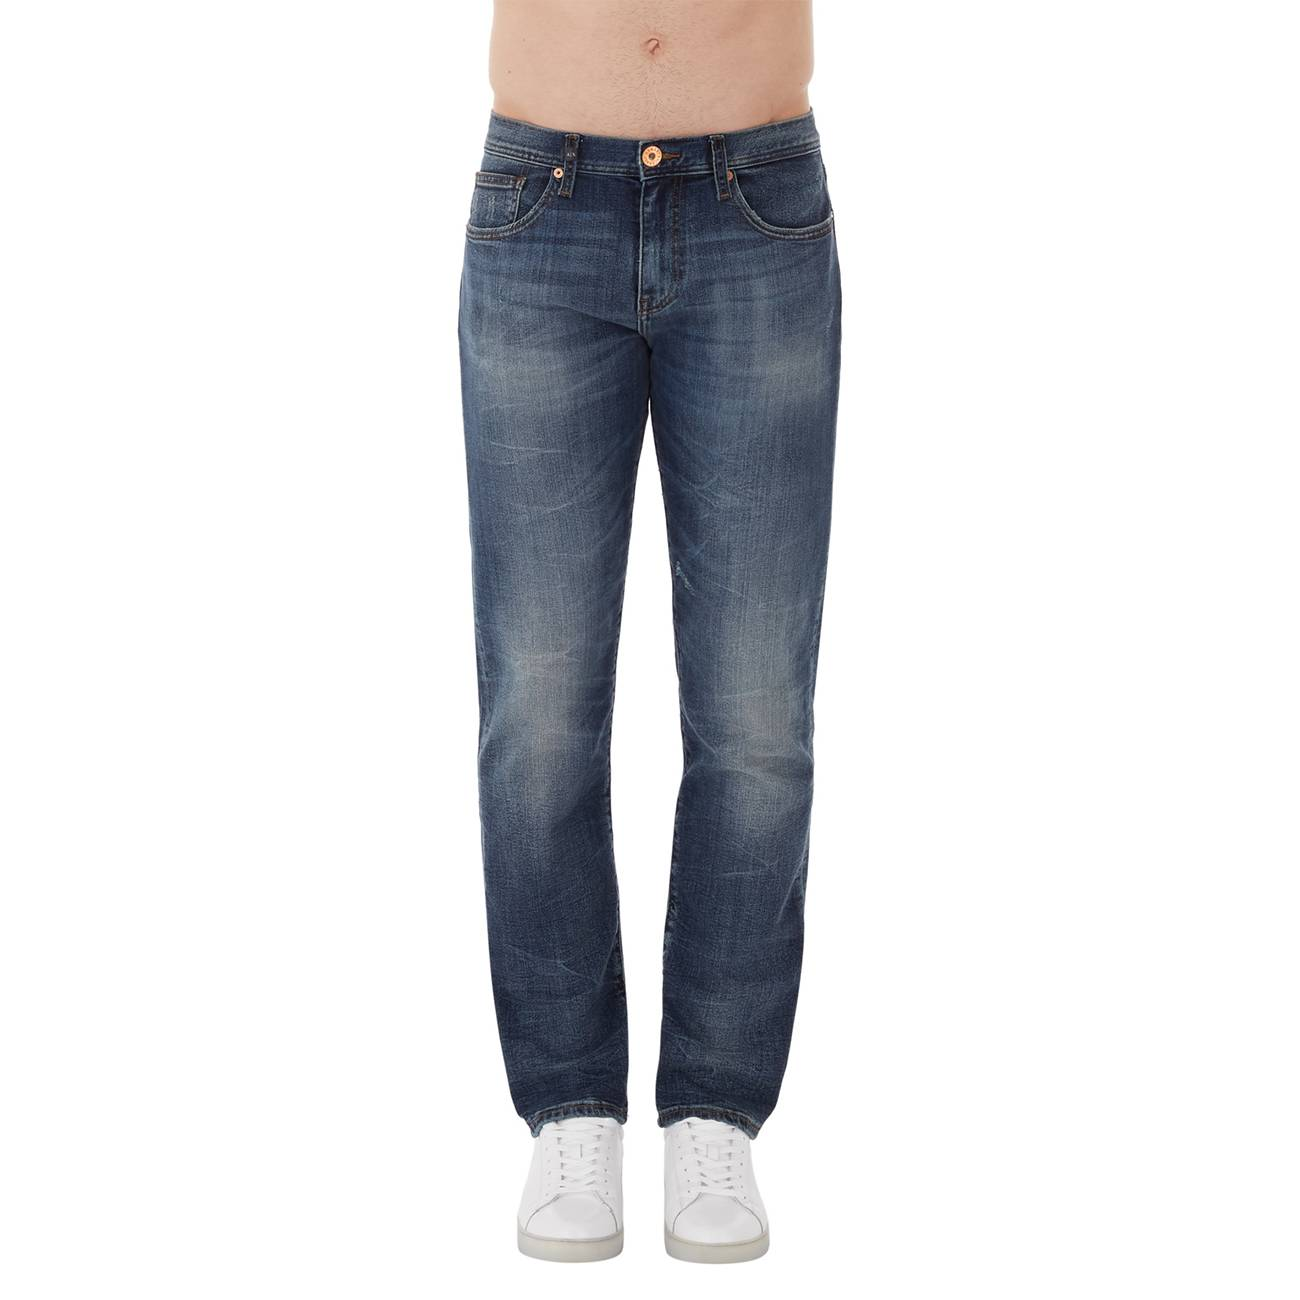 Jeans 34r